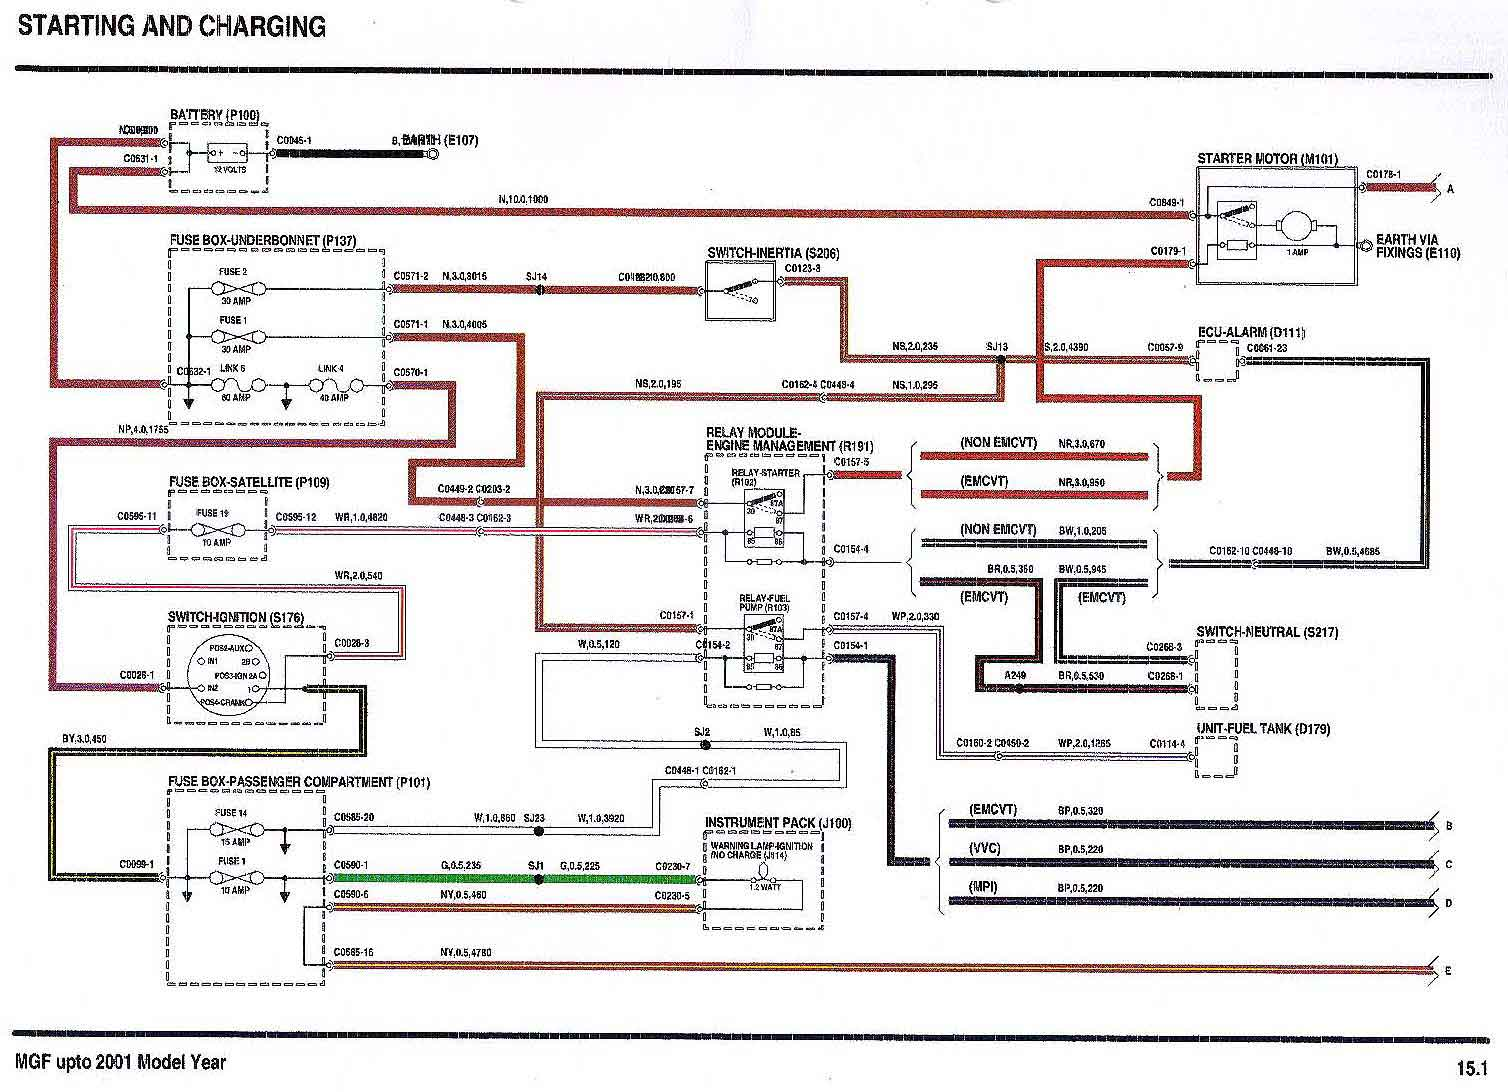 Mgf Starter Motor Wiring Diagram. mgf mg tf owners forum wiper motor  freelander motor. mgf tf battery starter motor and alternator. rover 25  starter motor relay location. mg zr scu wiring diagram2002-acura-tl-radio.info